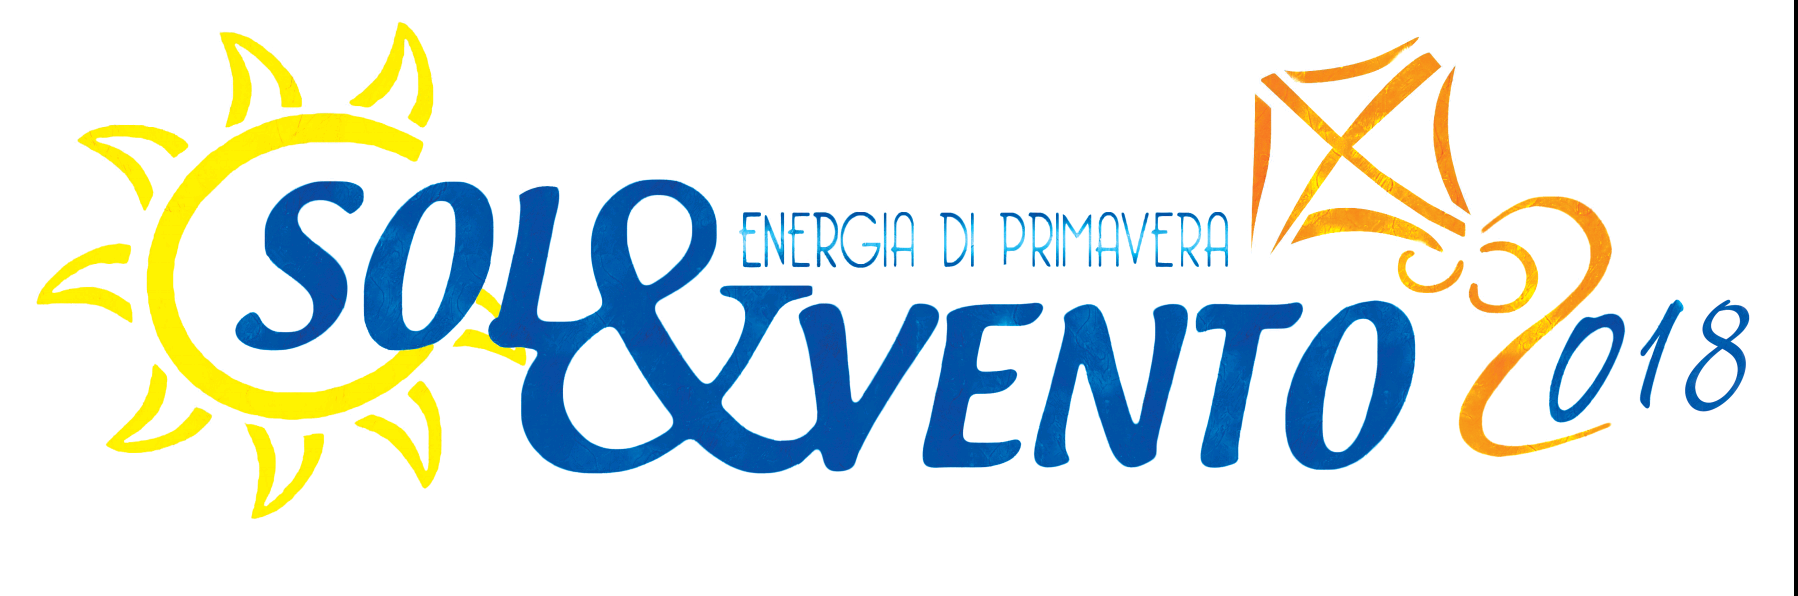 Logo Solevento2018.png